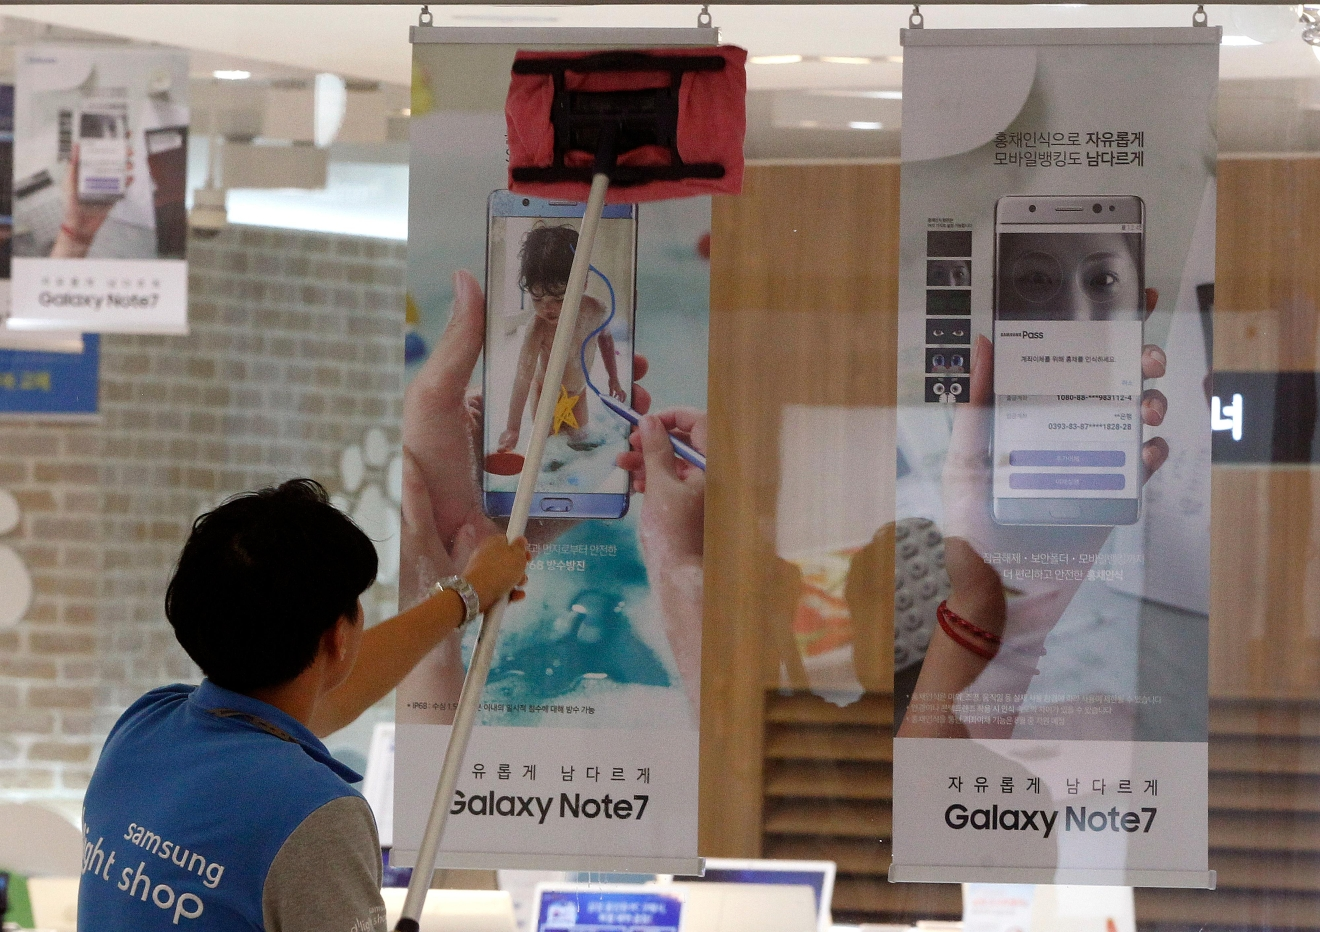 A worker cleans a window as posters of Samsung Electronics Galaxy Note 7 smartphone are displayed at the company's shop in Seoul in Seoul, South Korea, Monday, Oct. 10, 2016. Samsung Electronics has temporarily halted production of its Galaxy Note 7 smartphones, South Korea's Yonhap news agency reported Monday, following reports that replacements for the fire-prone phones were also overheating. (AP Photo/Ahn Young-joon)